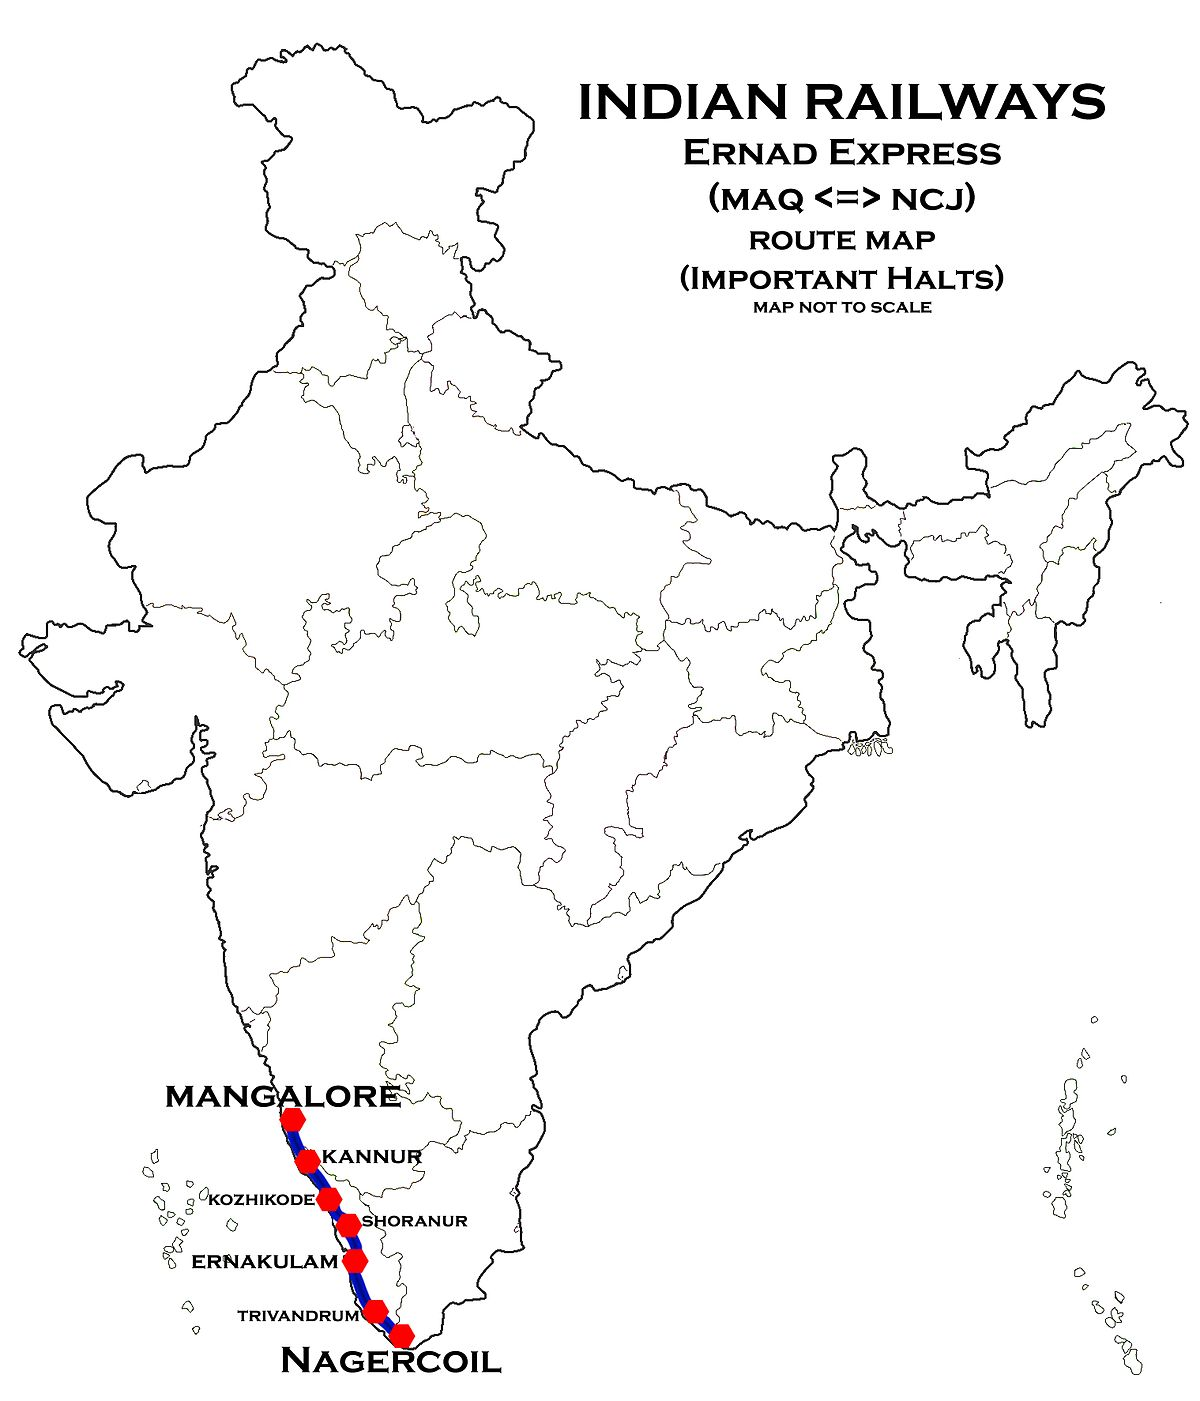 Ernad Express Wikipedia - Kanhangad map